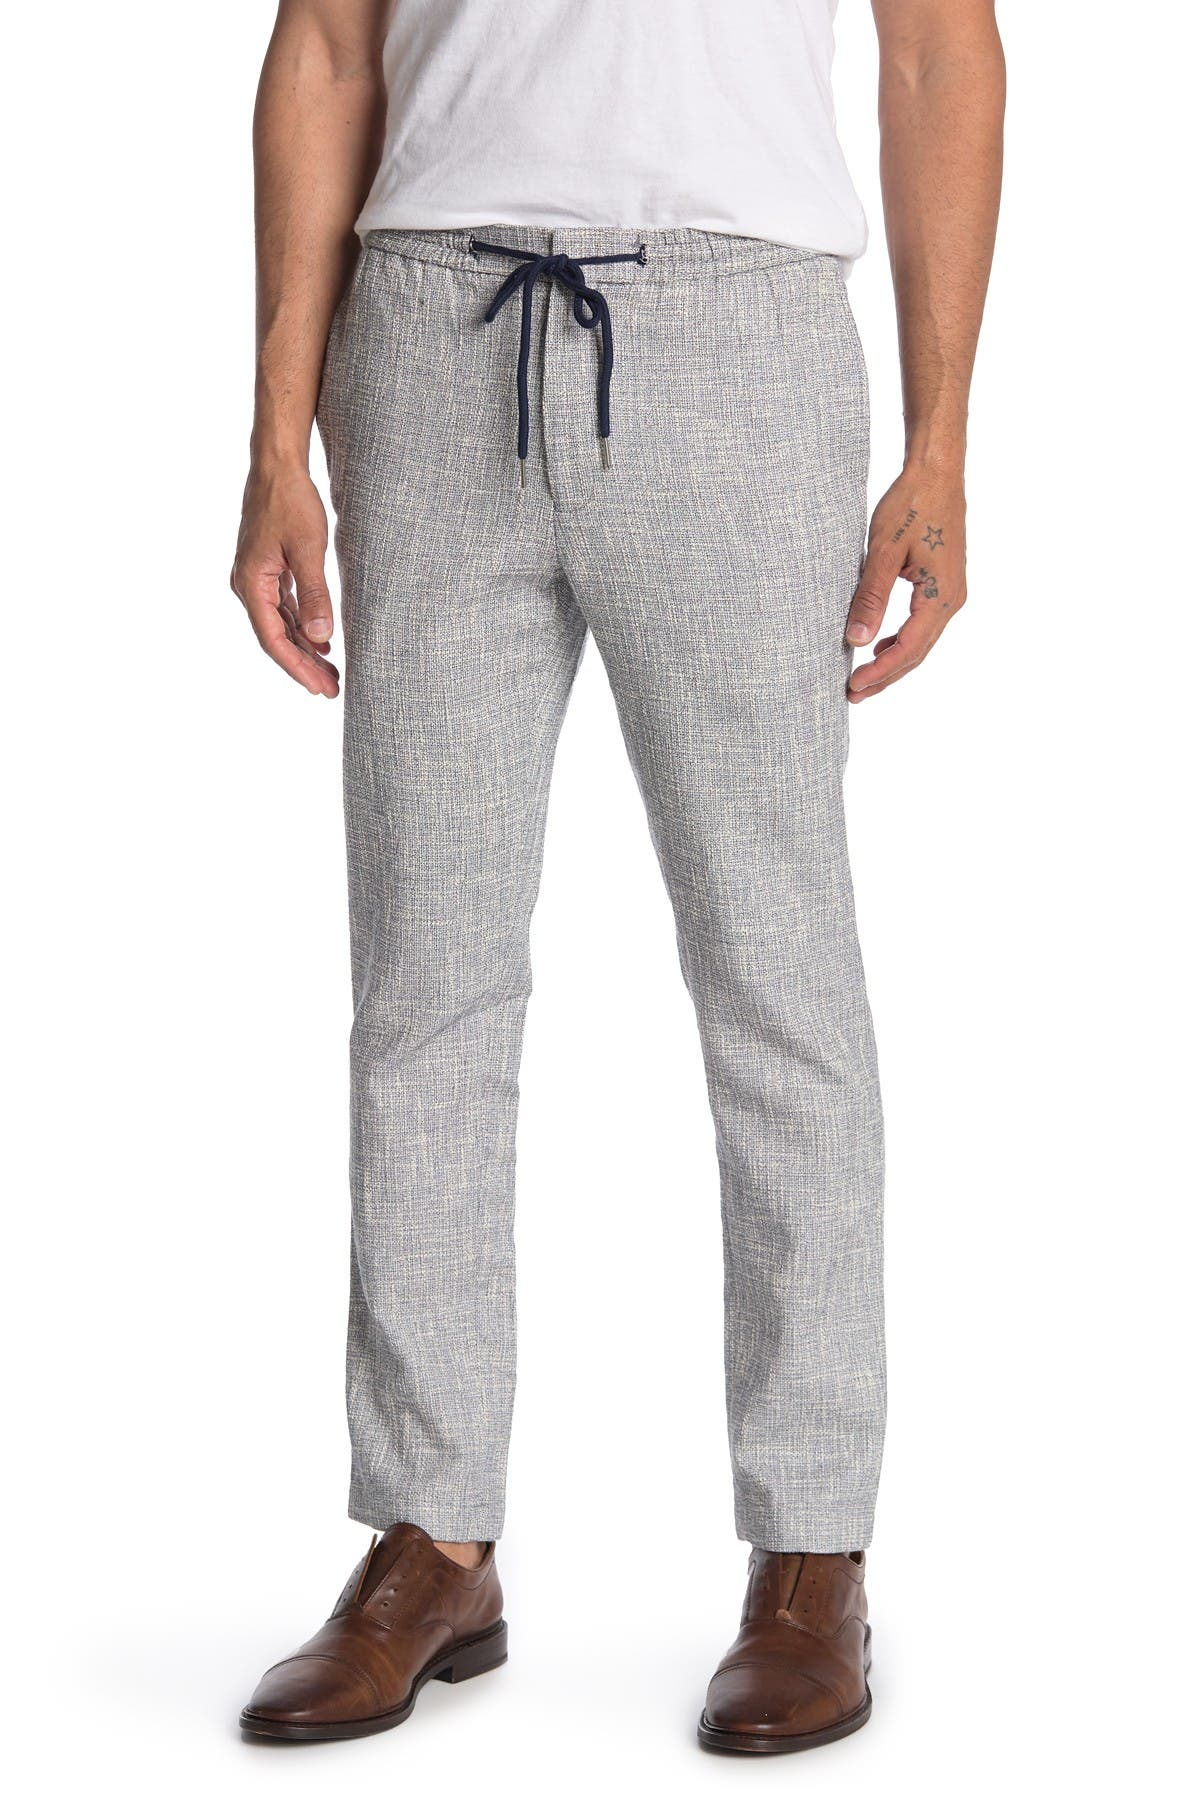 Image of Paisley & Gray Basketweave Heathered Slim FIt Pants